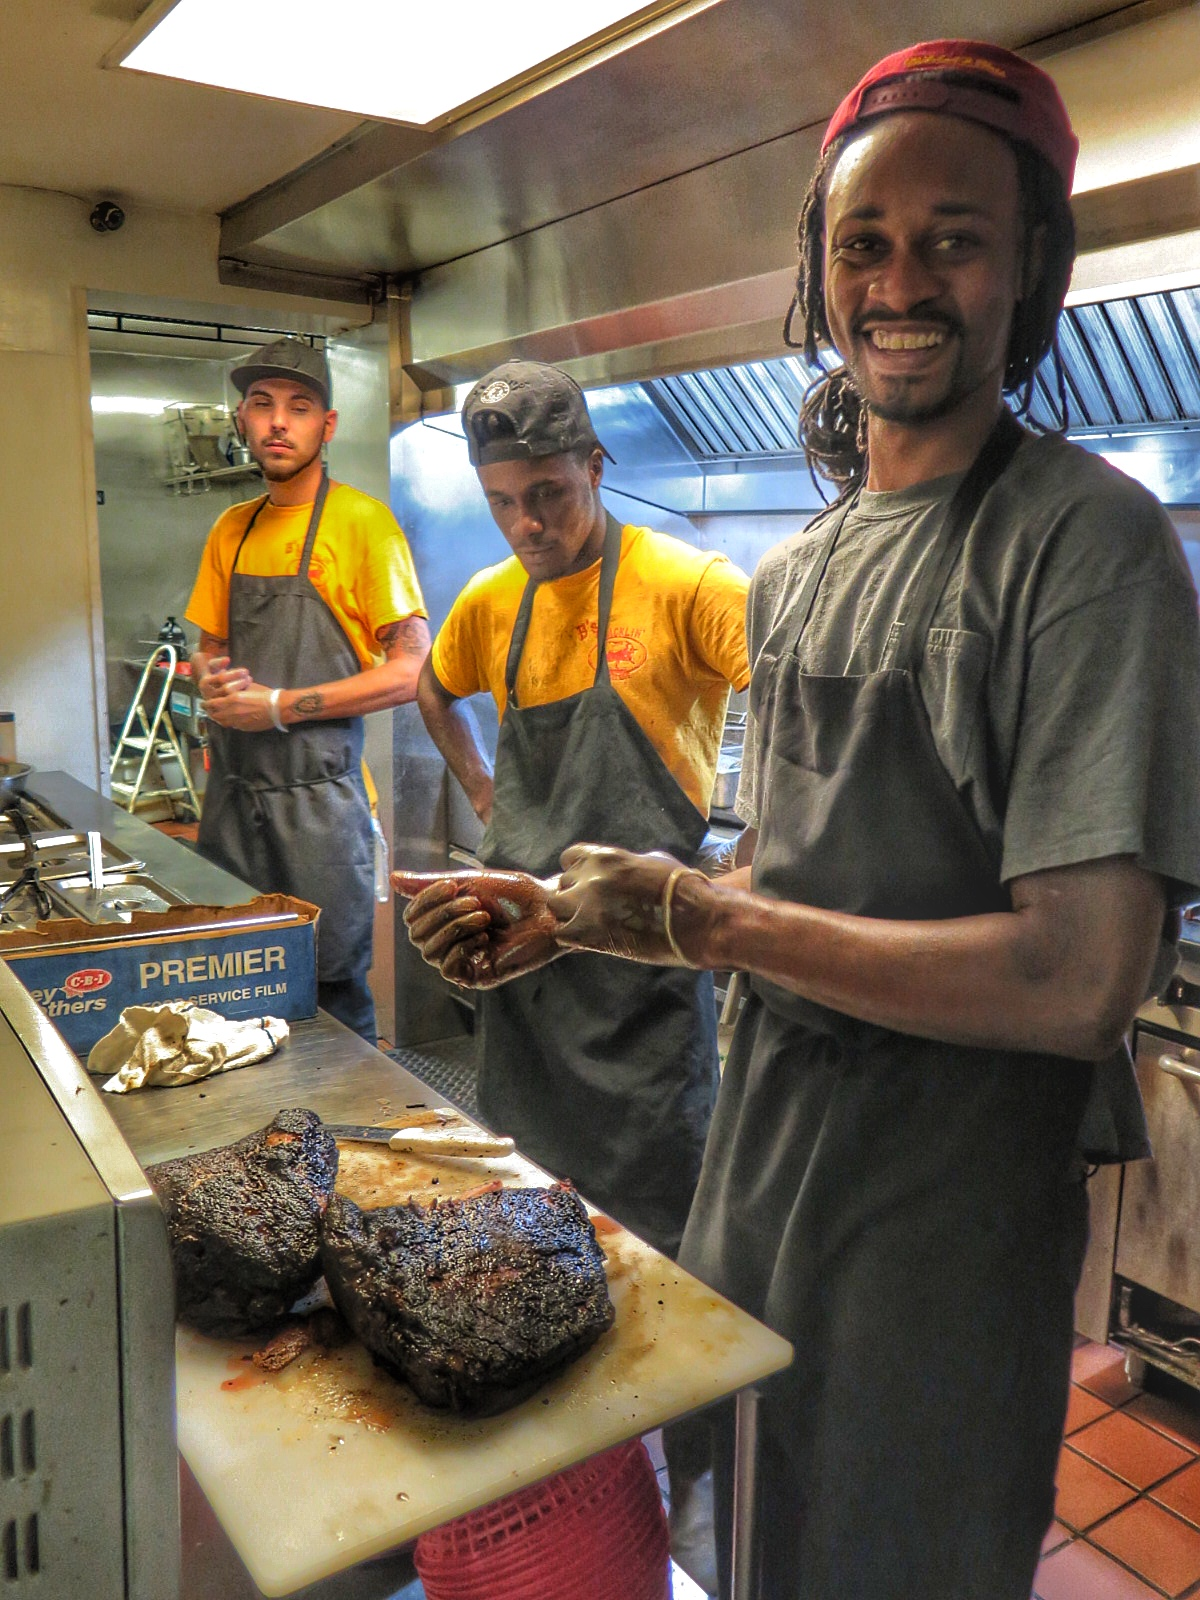 Bryan Furman with his crew in the kitchen.